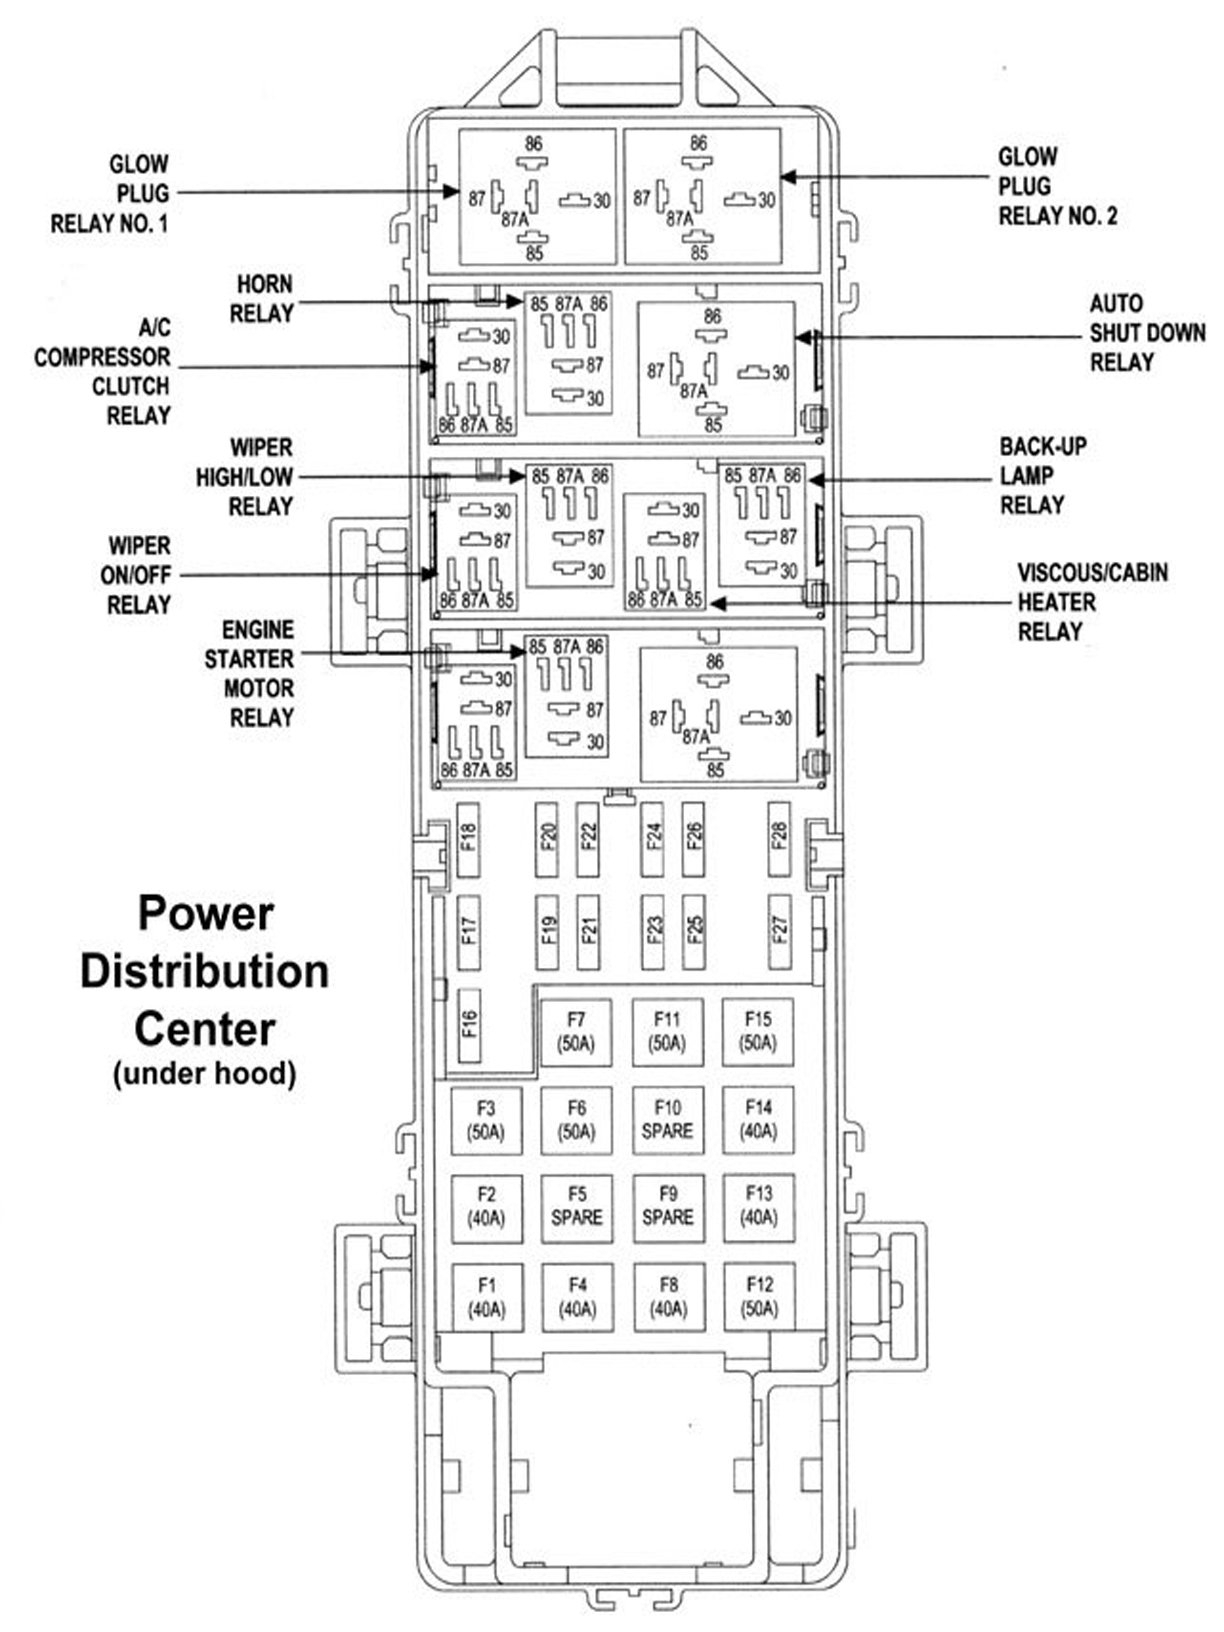 jeep grand cherokee wj 1999 to 2004 fuse box diagram cherokeeforum intended for 1998 jeep grand cherokee parts diagram jeep grand cherokee wj 1999 to 2004 fuse box diagram 2003 jeep grand cherokee fuse box diagram at mifinder.co